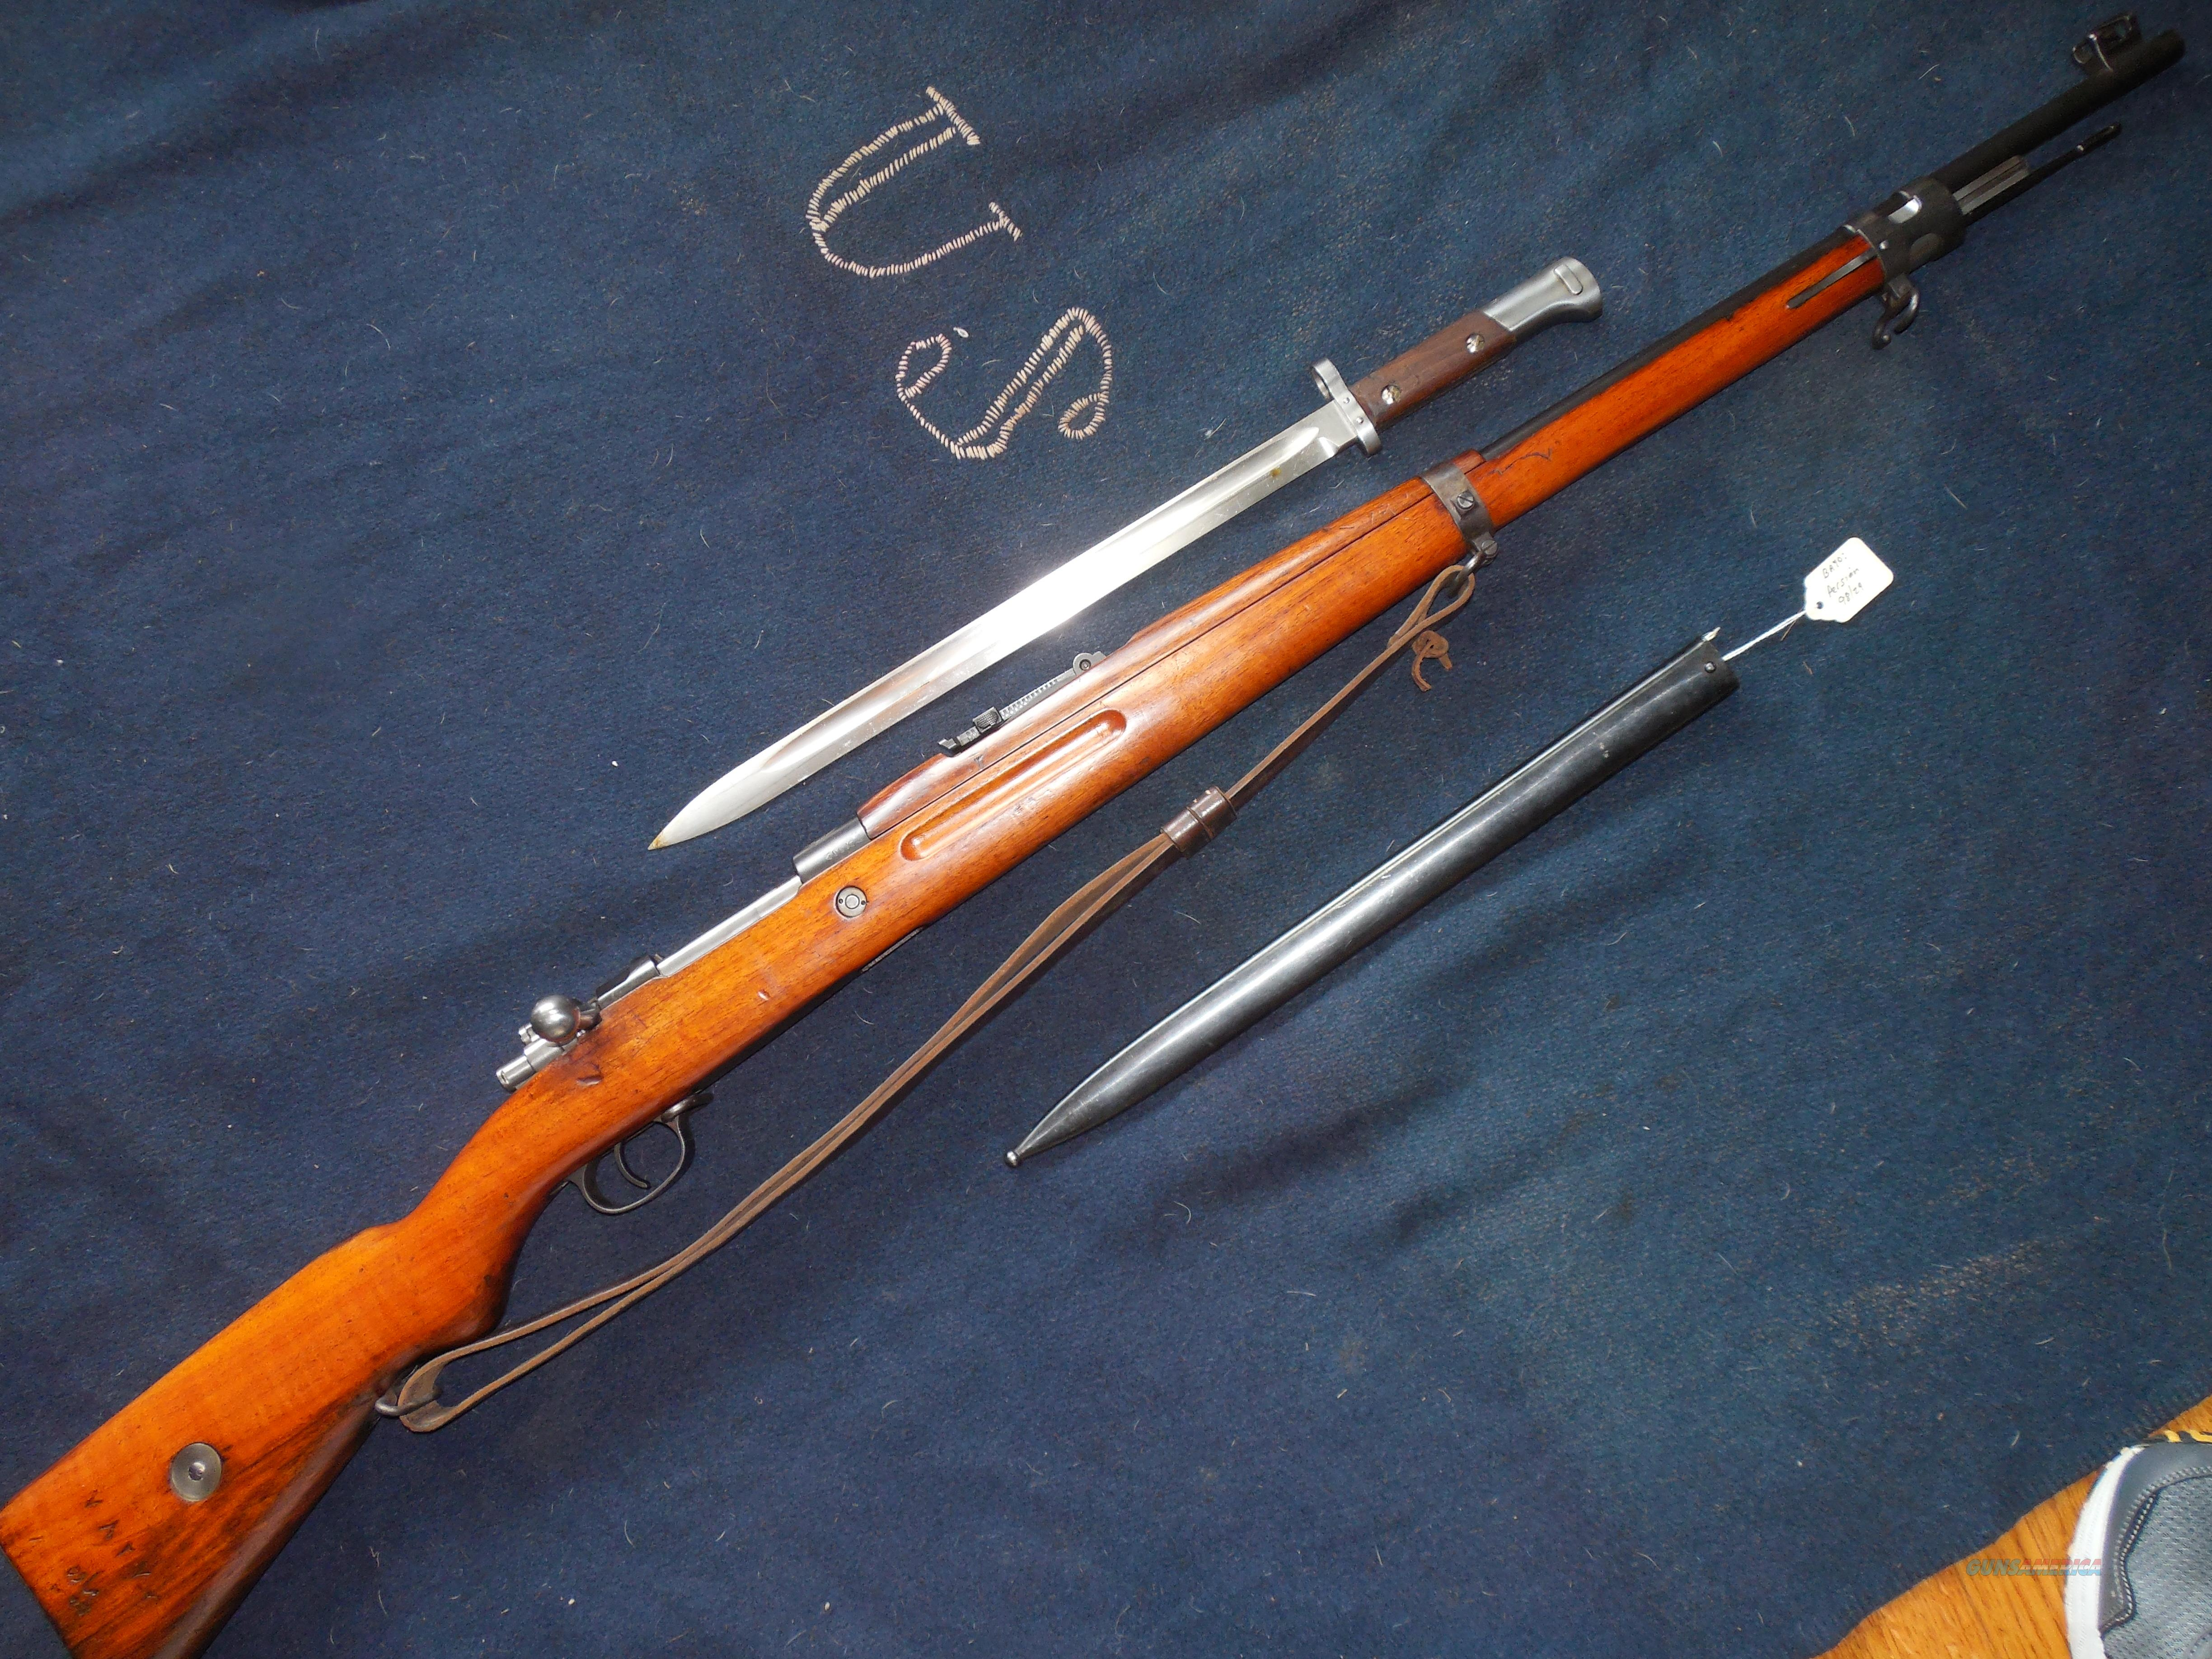 Persian 98/29 ALL MATCHING INCL bayonet  Guns > Rifles > Military Misc. Rifles Non-US > Other